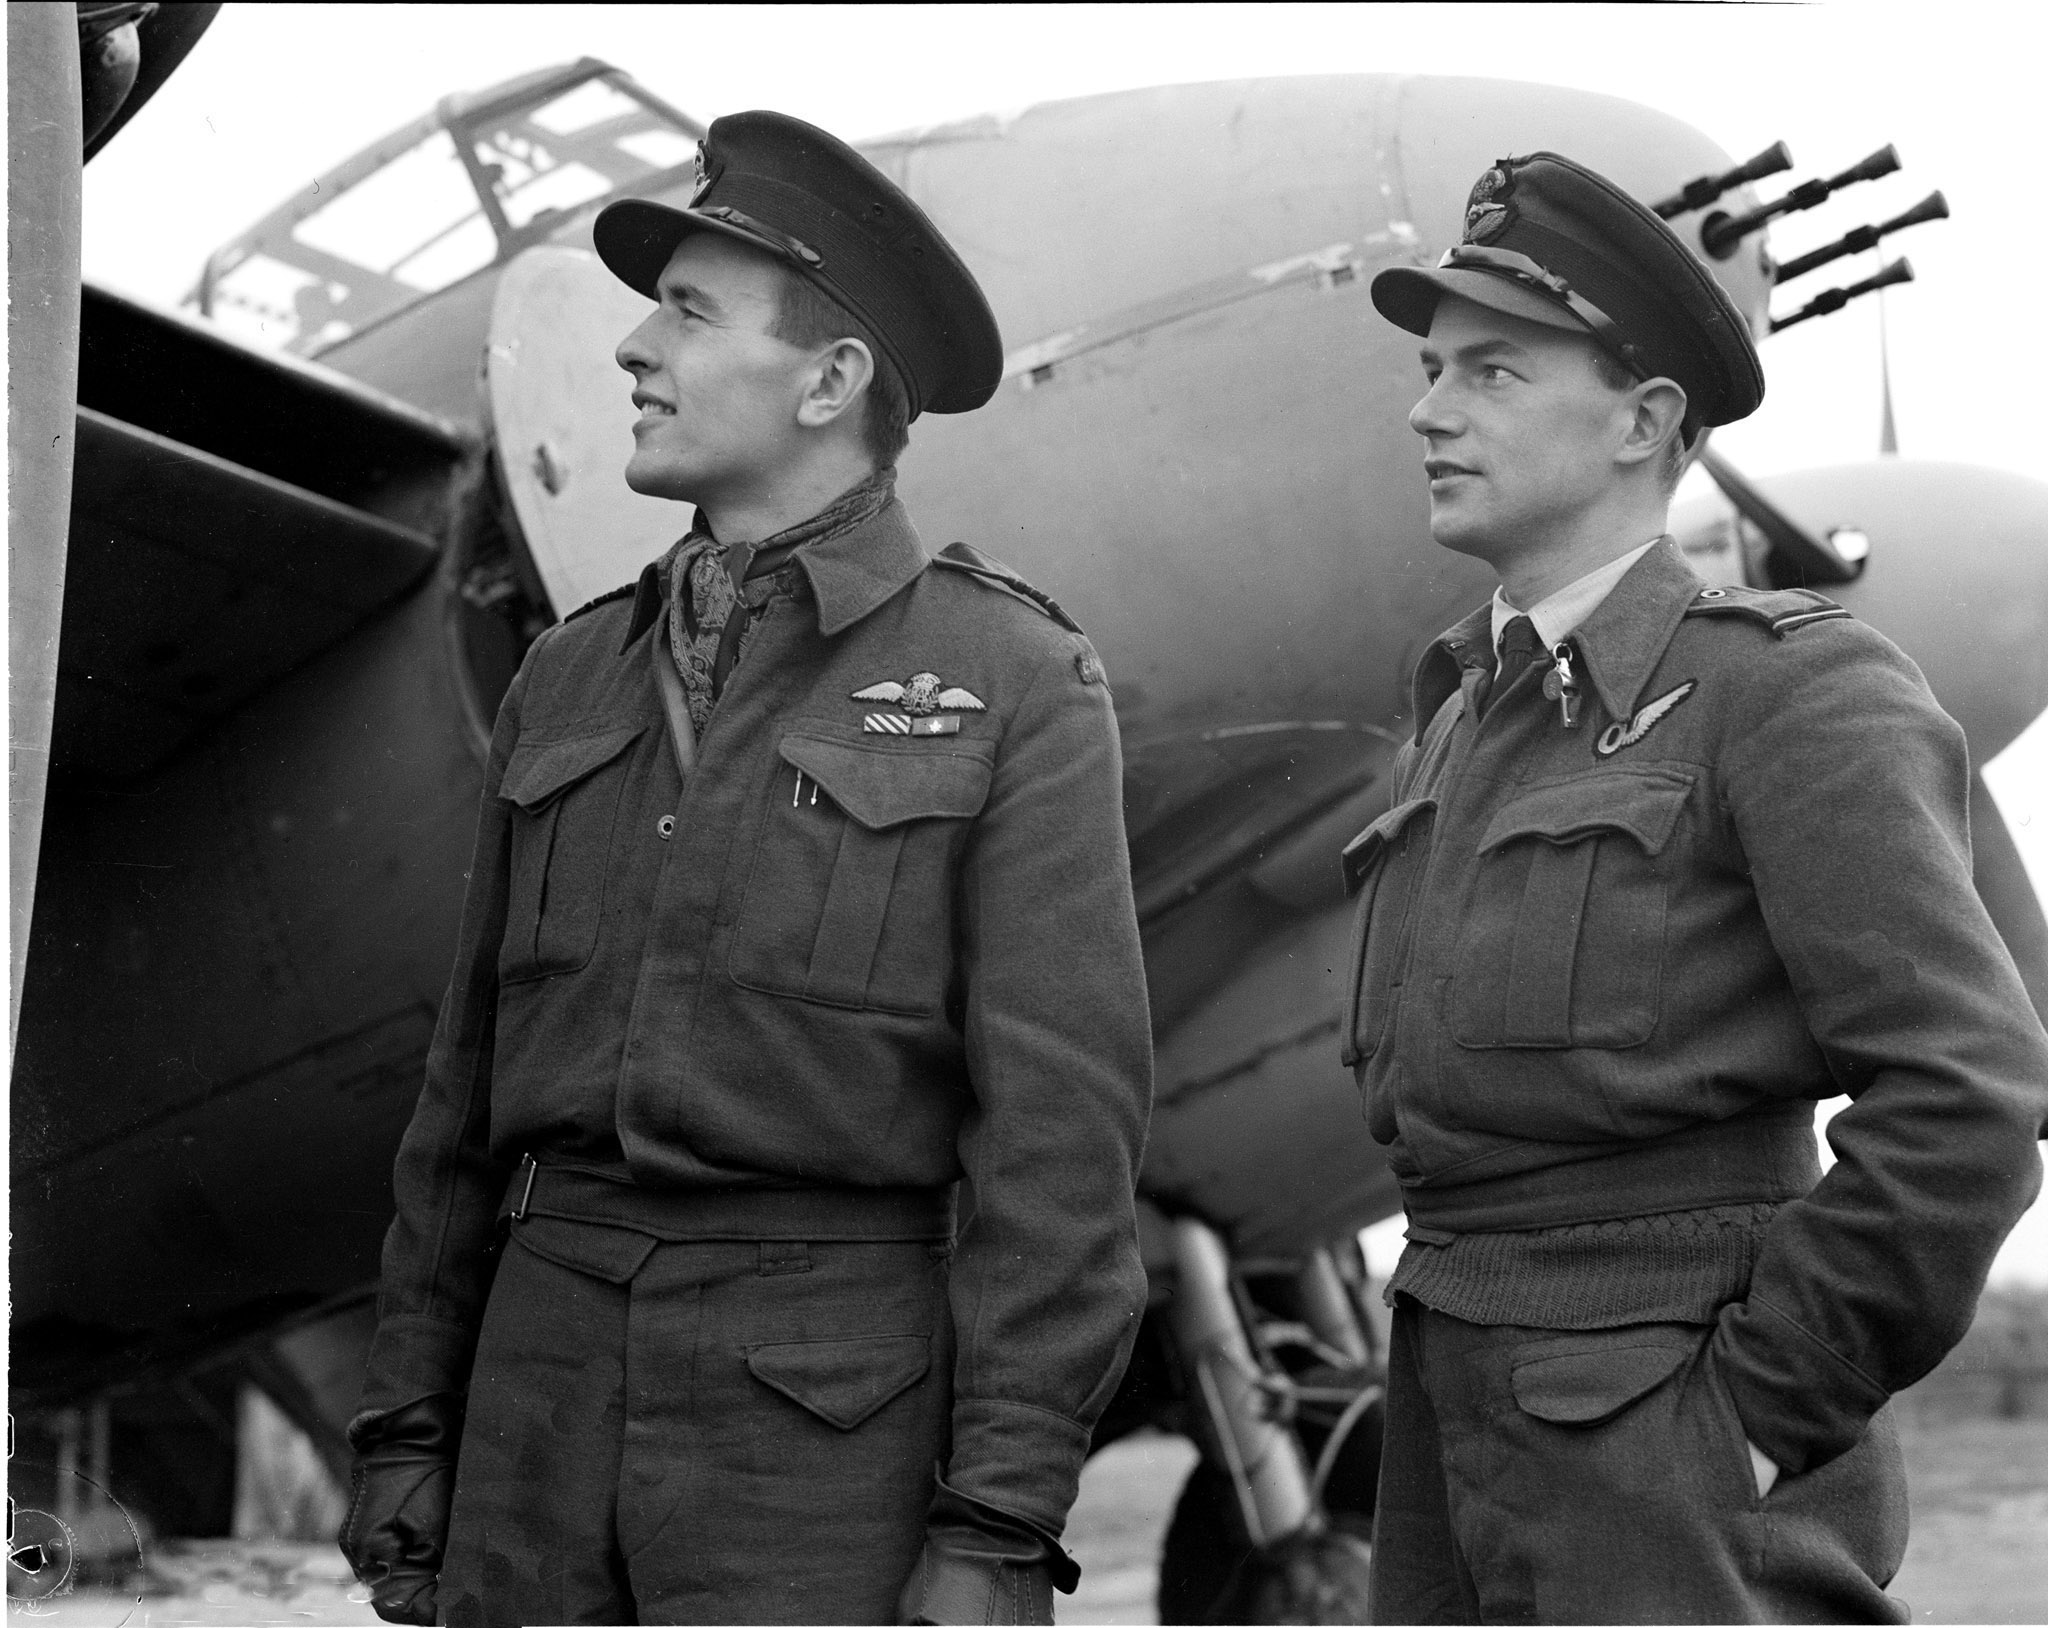 Two men wearing Second World War era air force uniforms, stand in front of a large aircraft.